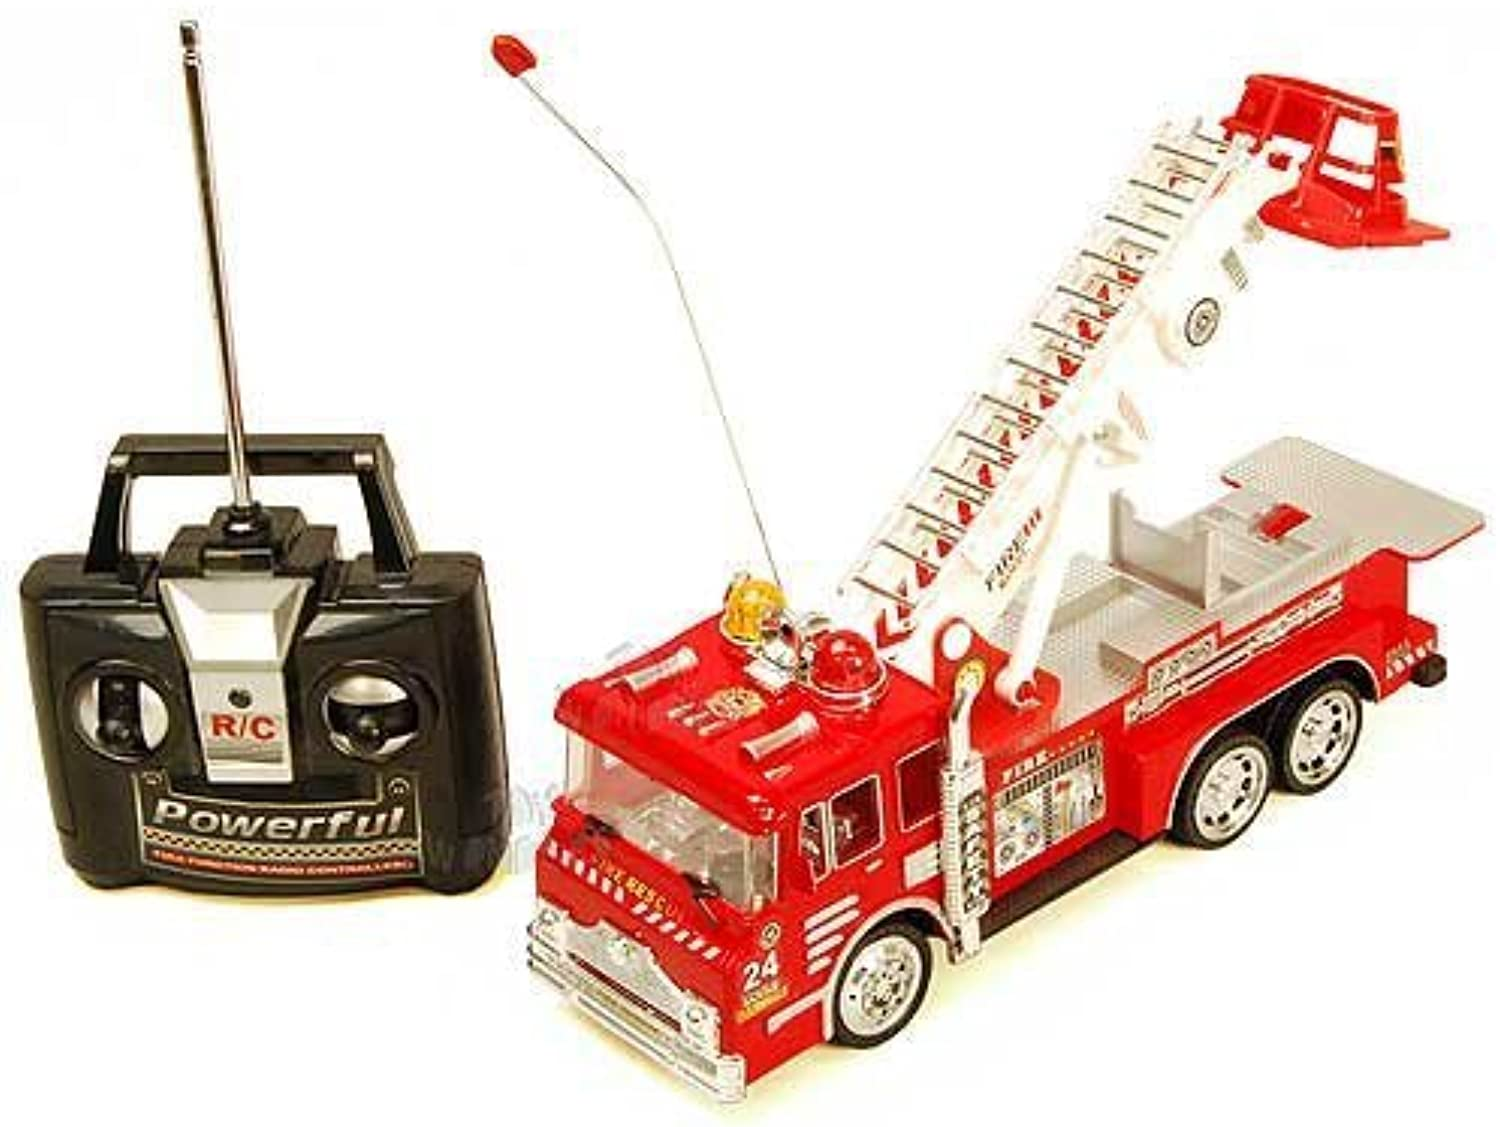 10 R C Rescue Fire Engine Truck Remote Control Kids Toy with Extending Ladder & Lights by Rescue Zero Team